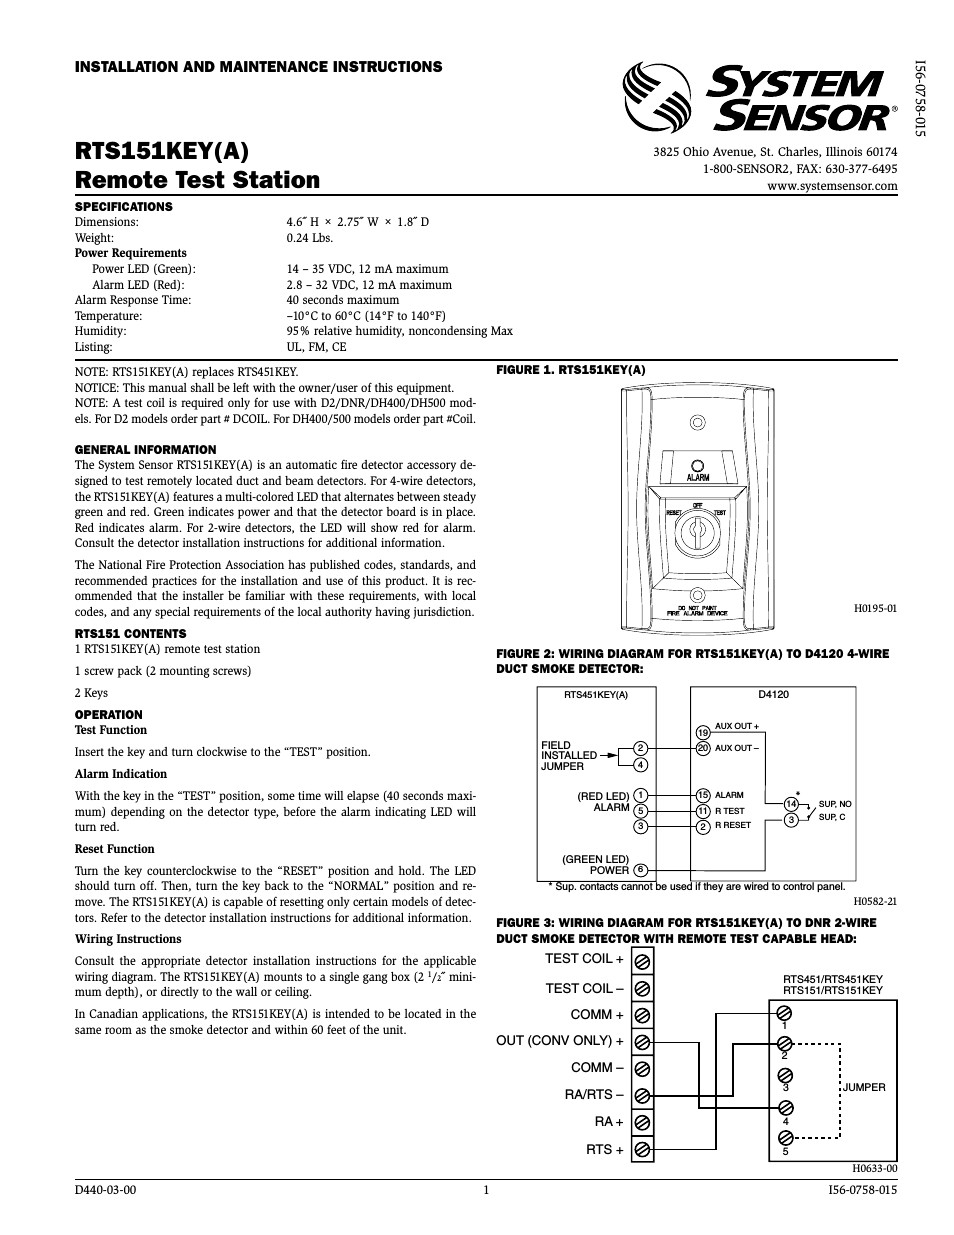 system sensor smoke detector wiring diagram Collection-System Sensor Convention 4 Wire Duct Smoke Detector D4120 Wiring Fancy 2-b